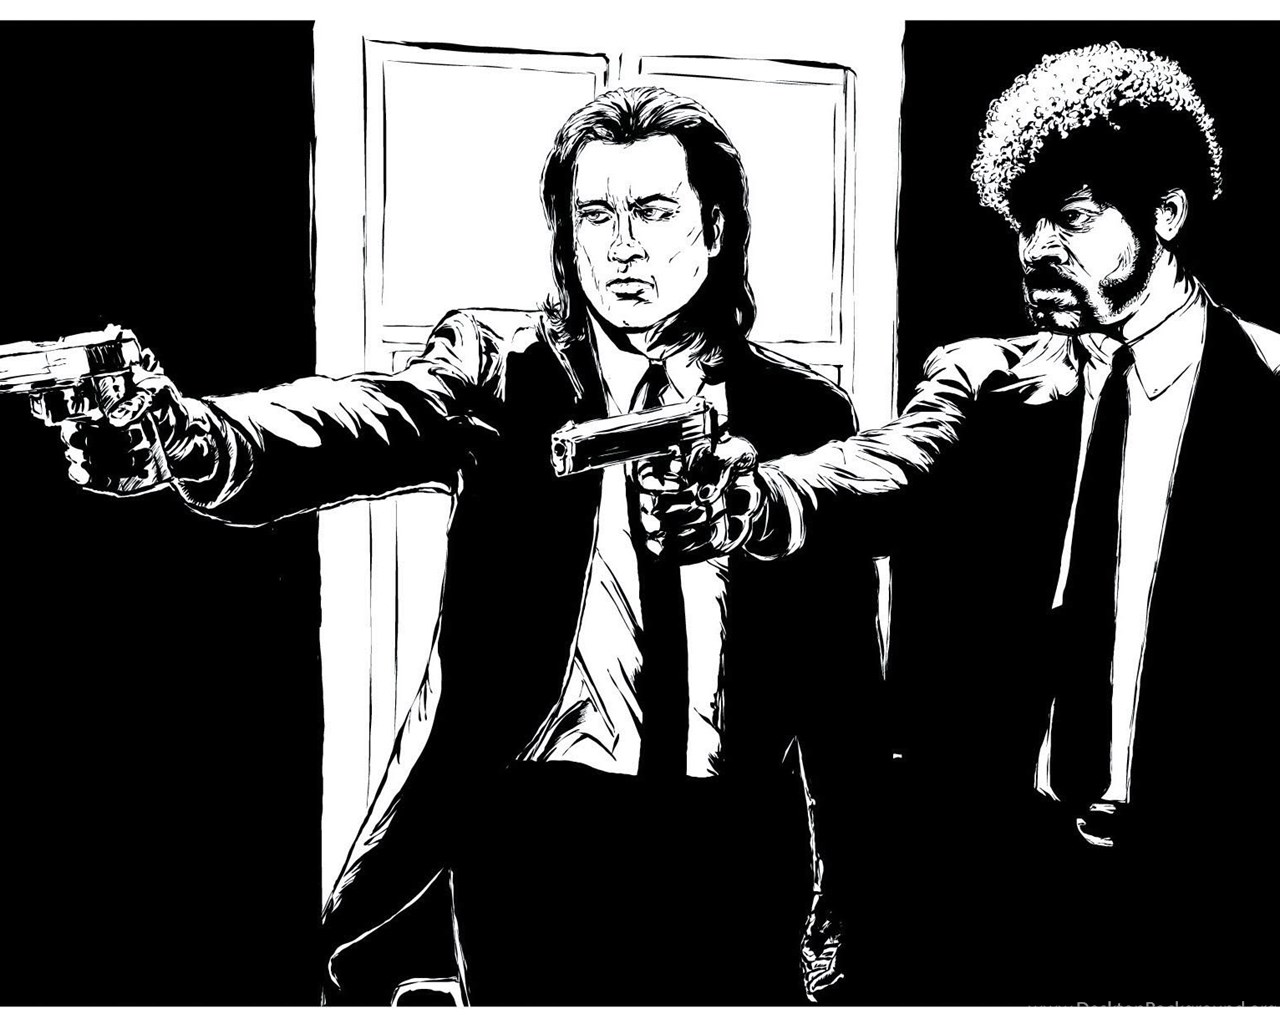 Pulp Fiction Wallpapers High Quality Desktop Background